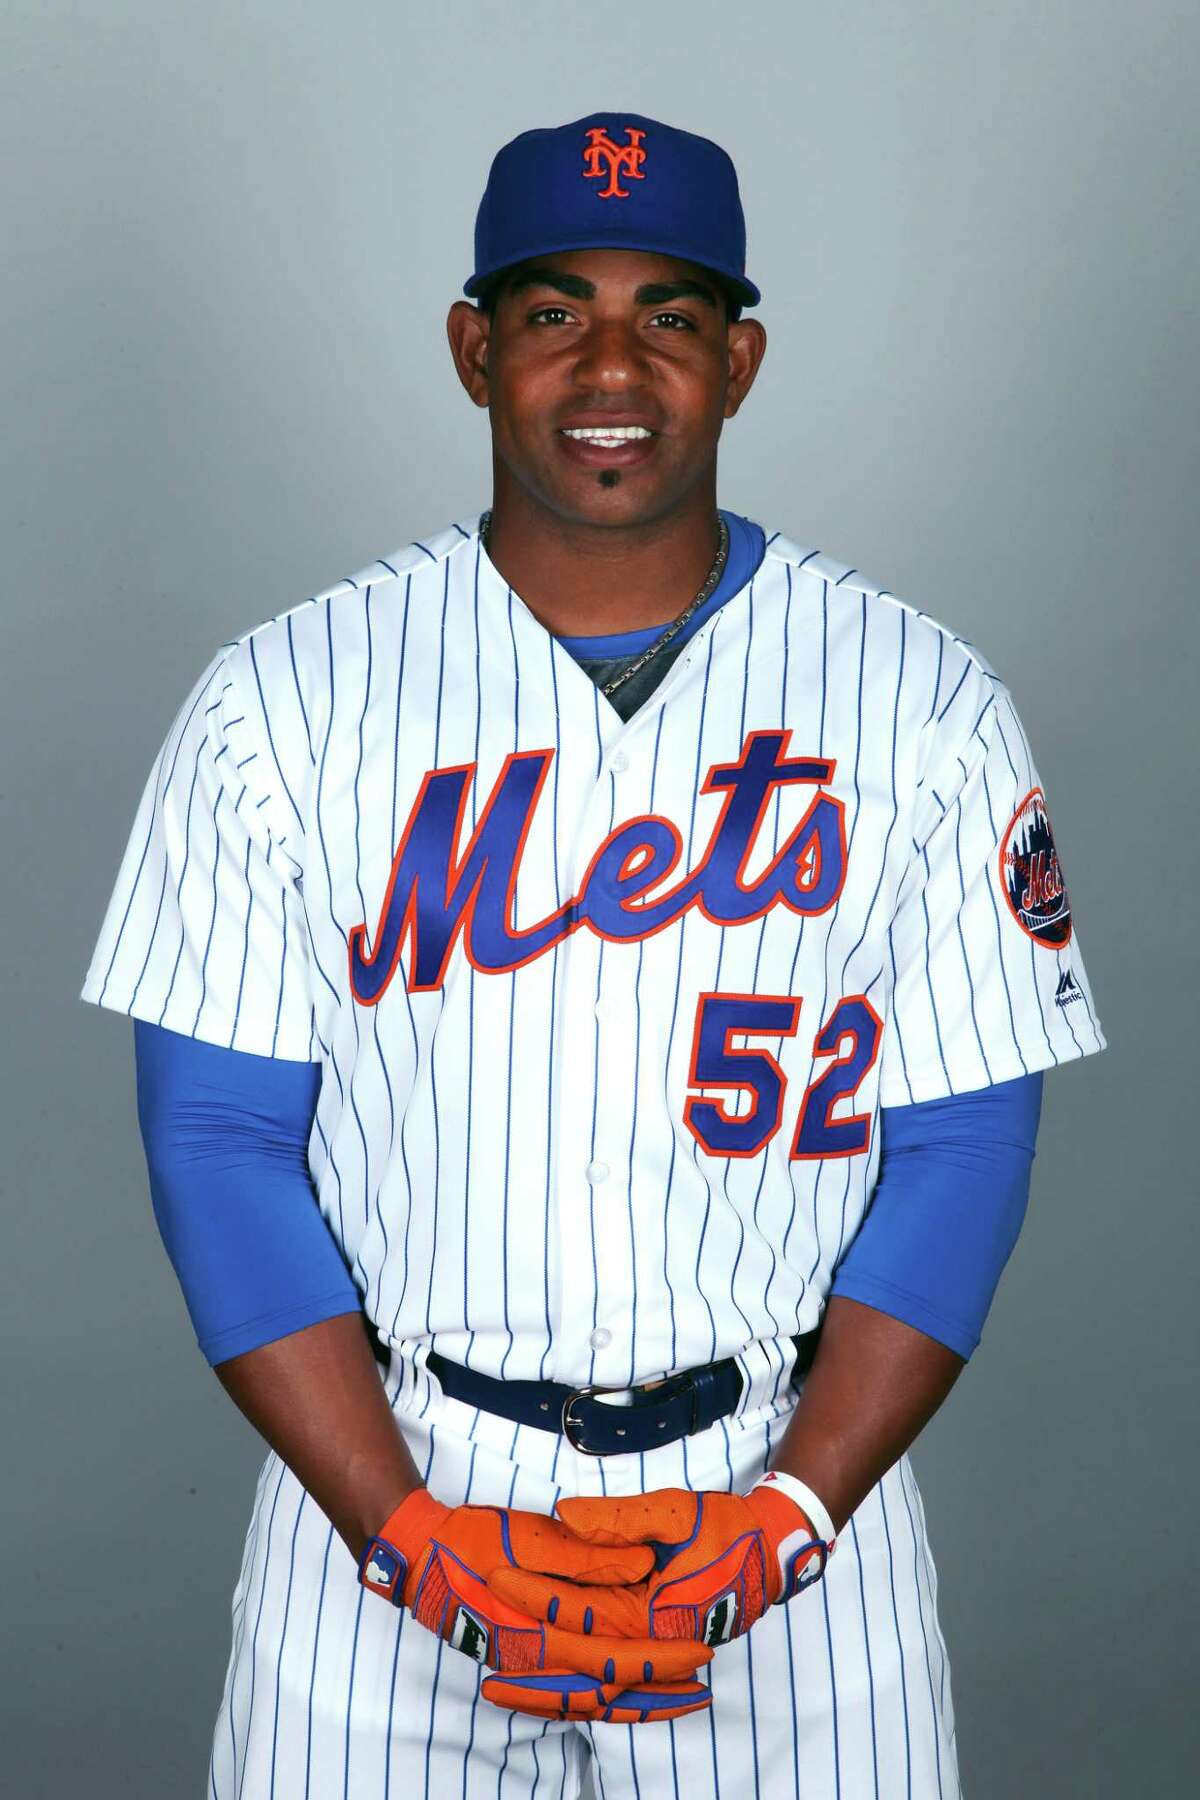 PORT ST. LUCIE, FL - FEBRUARY 22: Yoenis Cespedes #52of the New York Mets poses during Photo Day on Wednesday, February 22, 2017 at Tradition Field in Port St. Lucie, Florida. (Photo by Eliot J. Schechter/MLB Photos via Getty Images) *** Local Caption *** Yoenis Cespedes